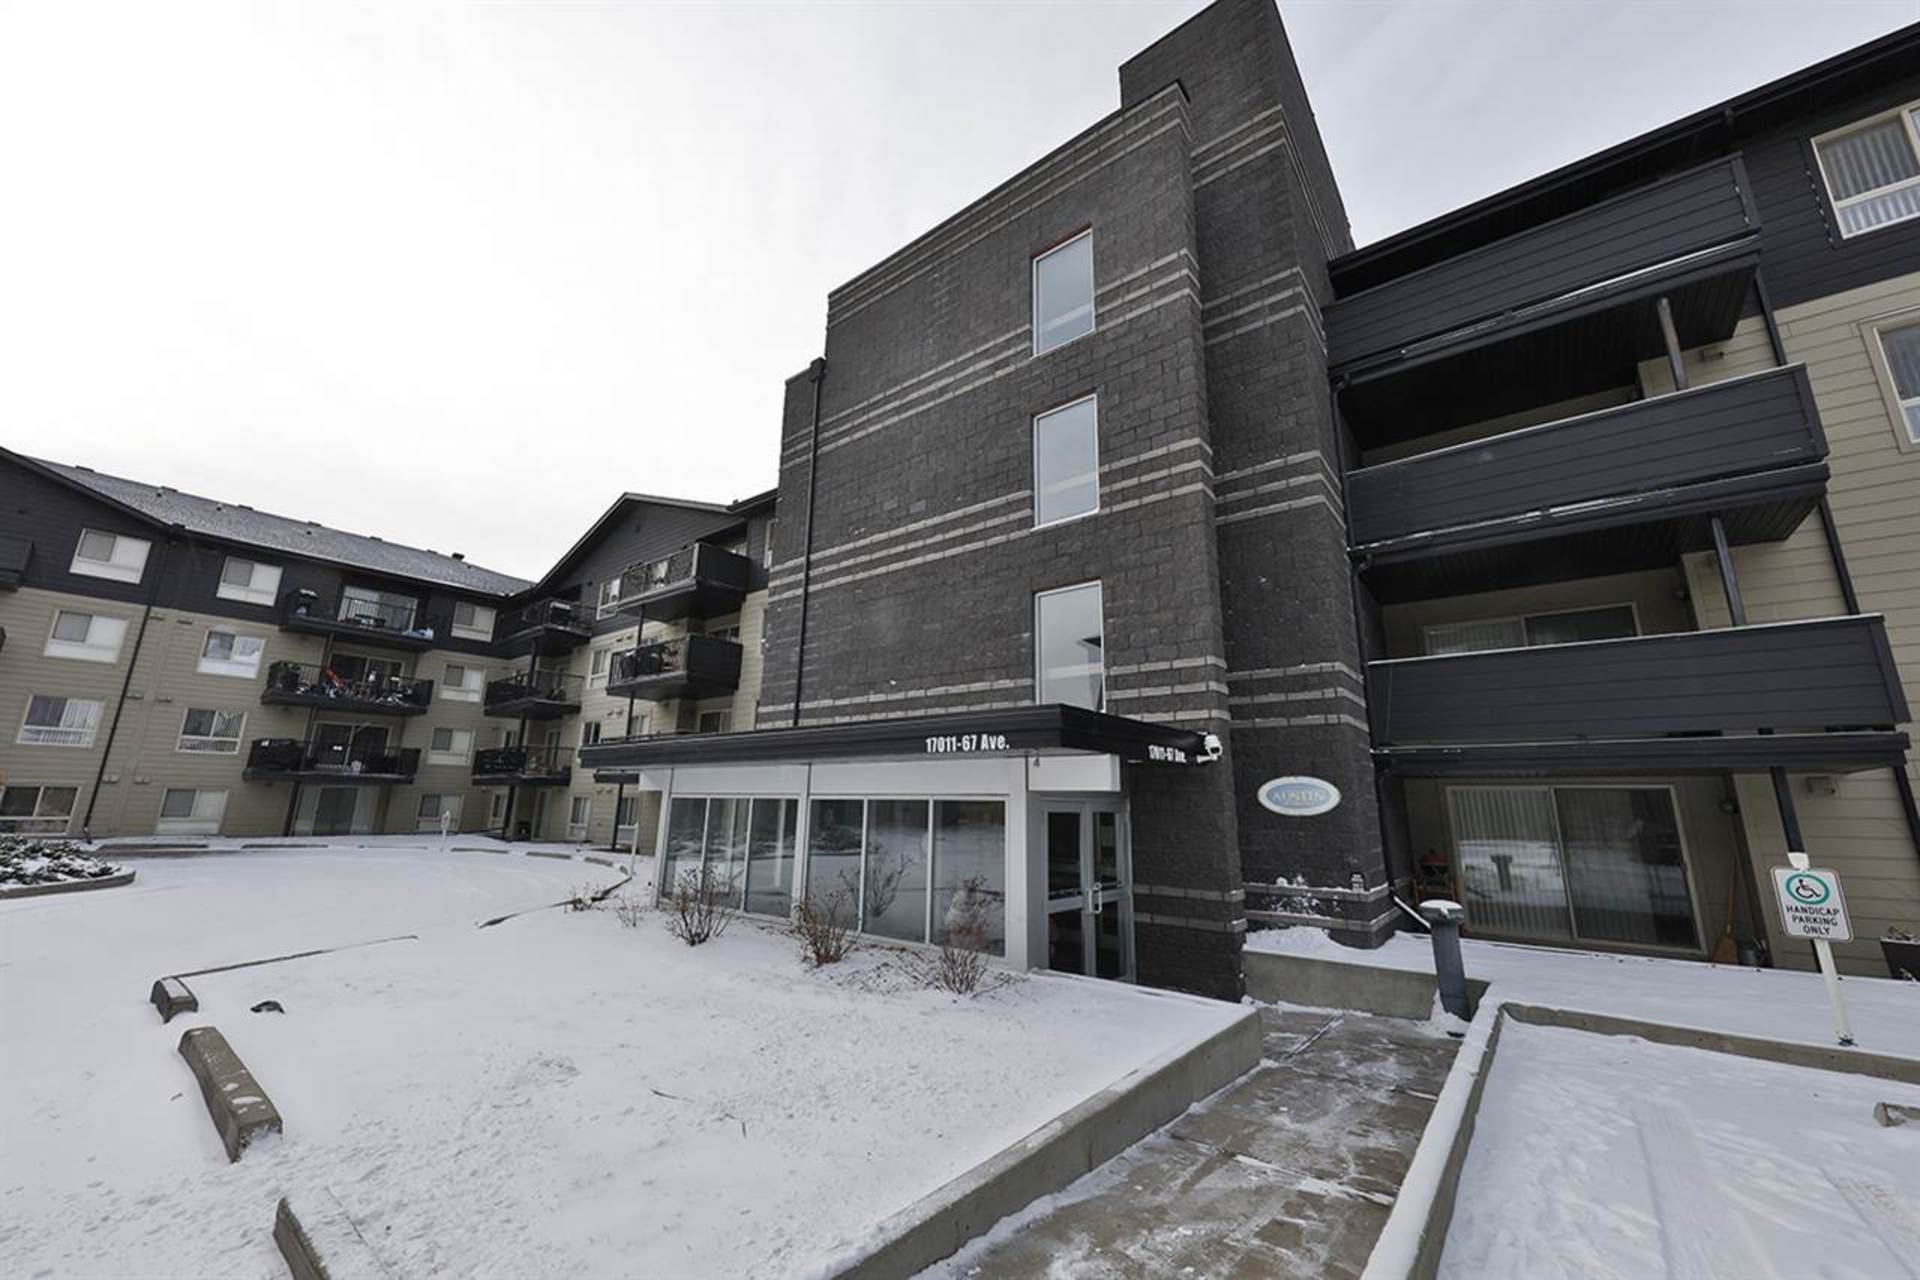 17011-67-avenue-callingwood-south-edmonton-01 at 102 - 17011 67 Avenue, Callingwood South, Edmonton